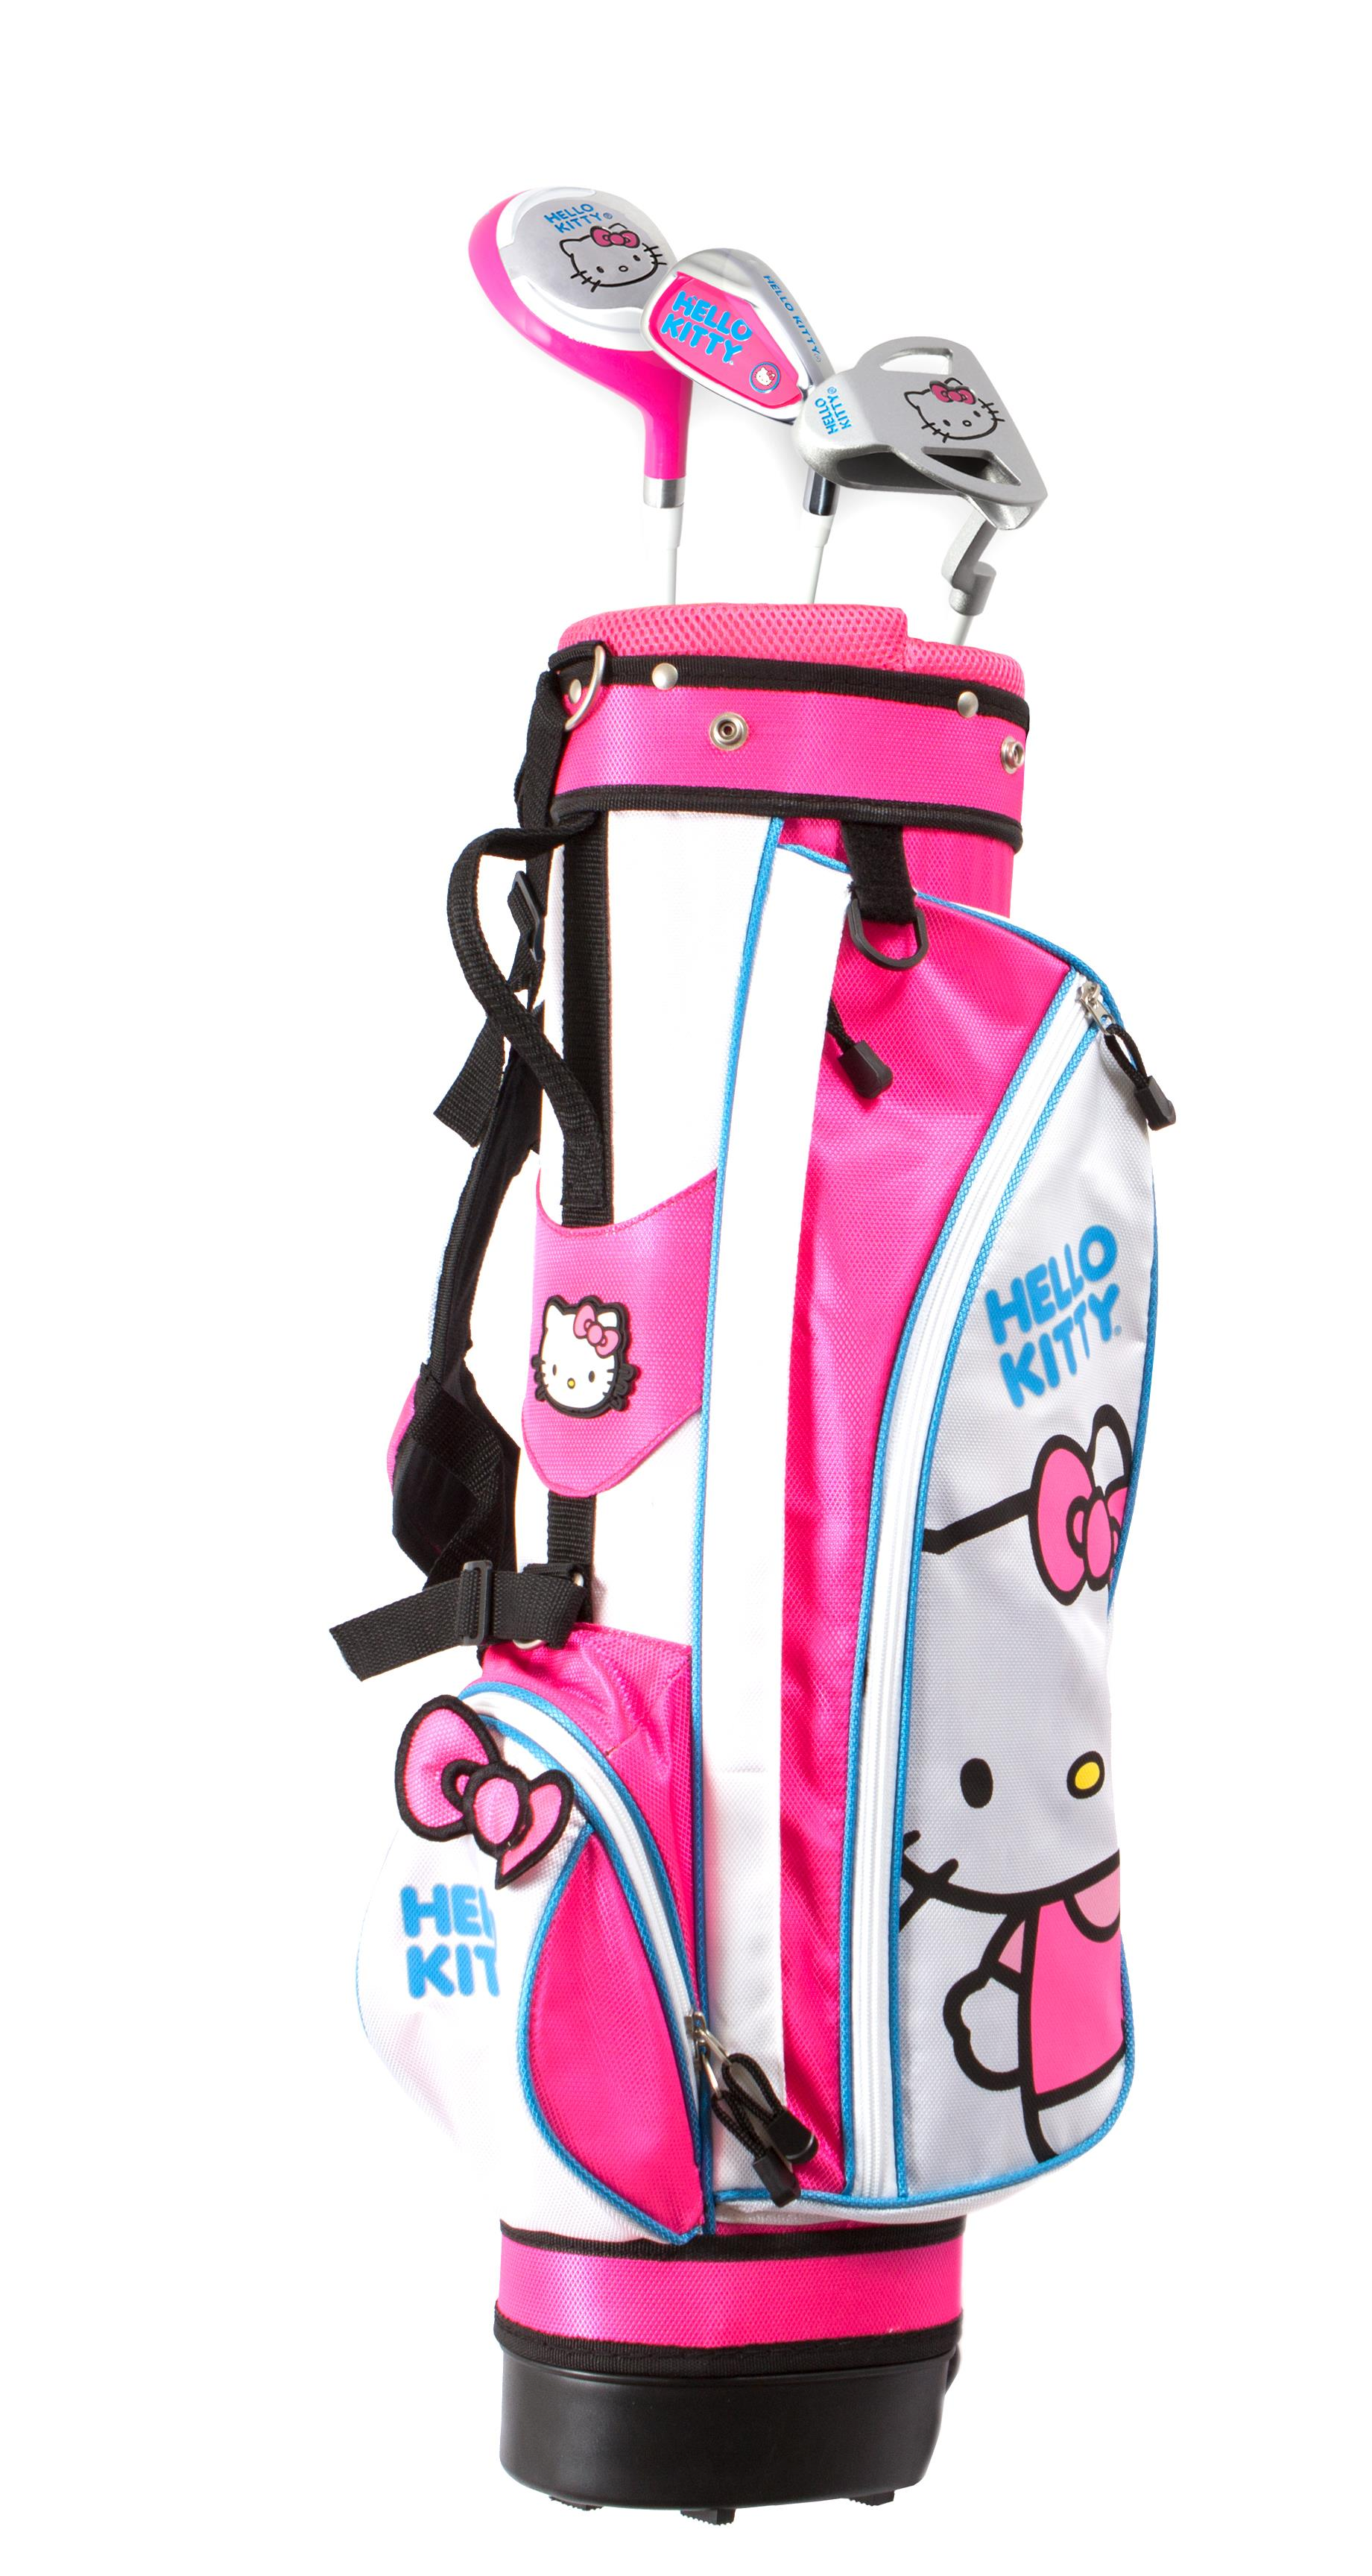 Hello Kitty Golf Junior (Model 1601)-Style:Ages 3-5 by Hello Kitty